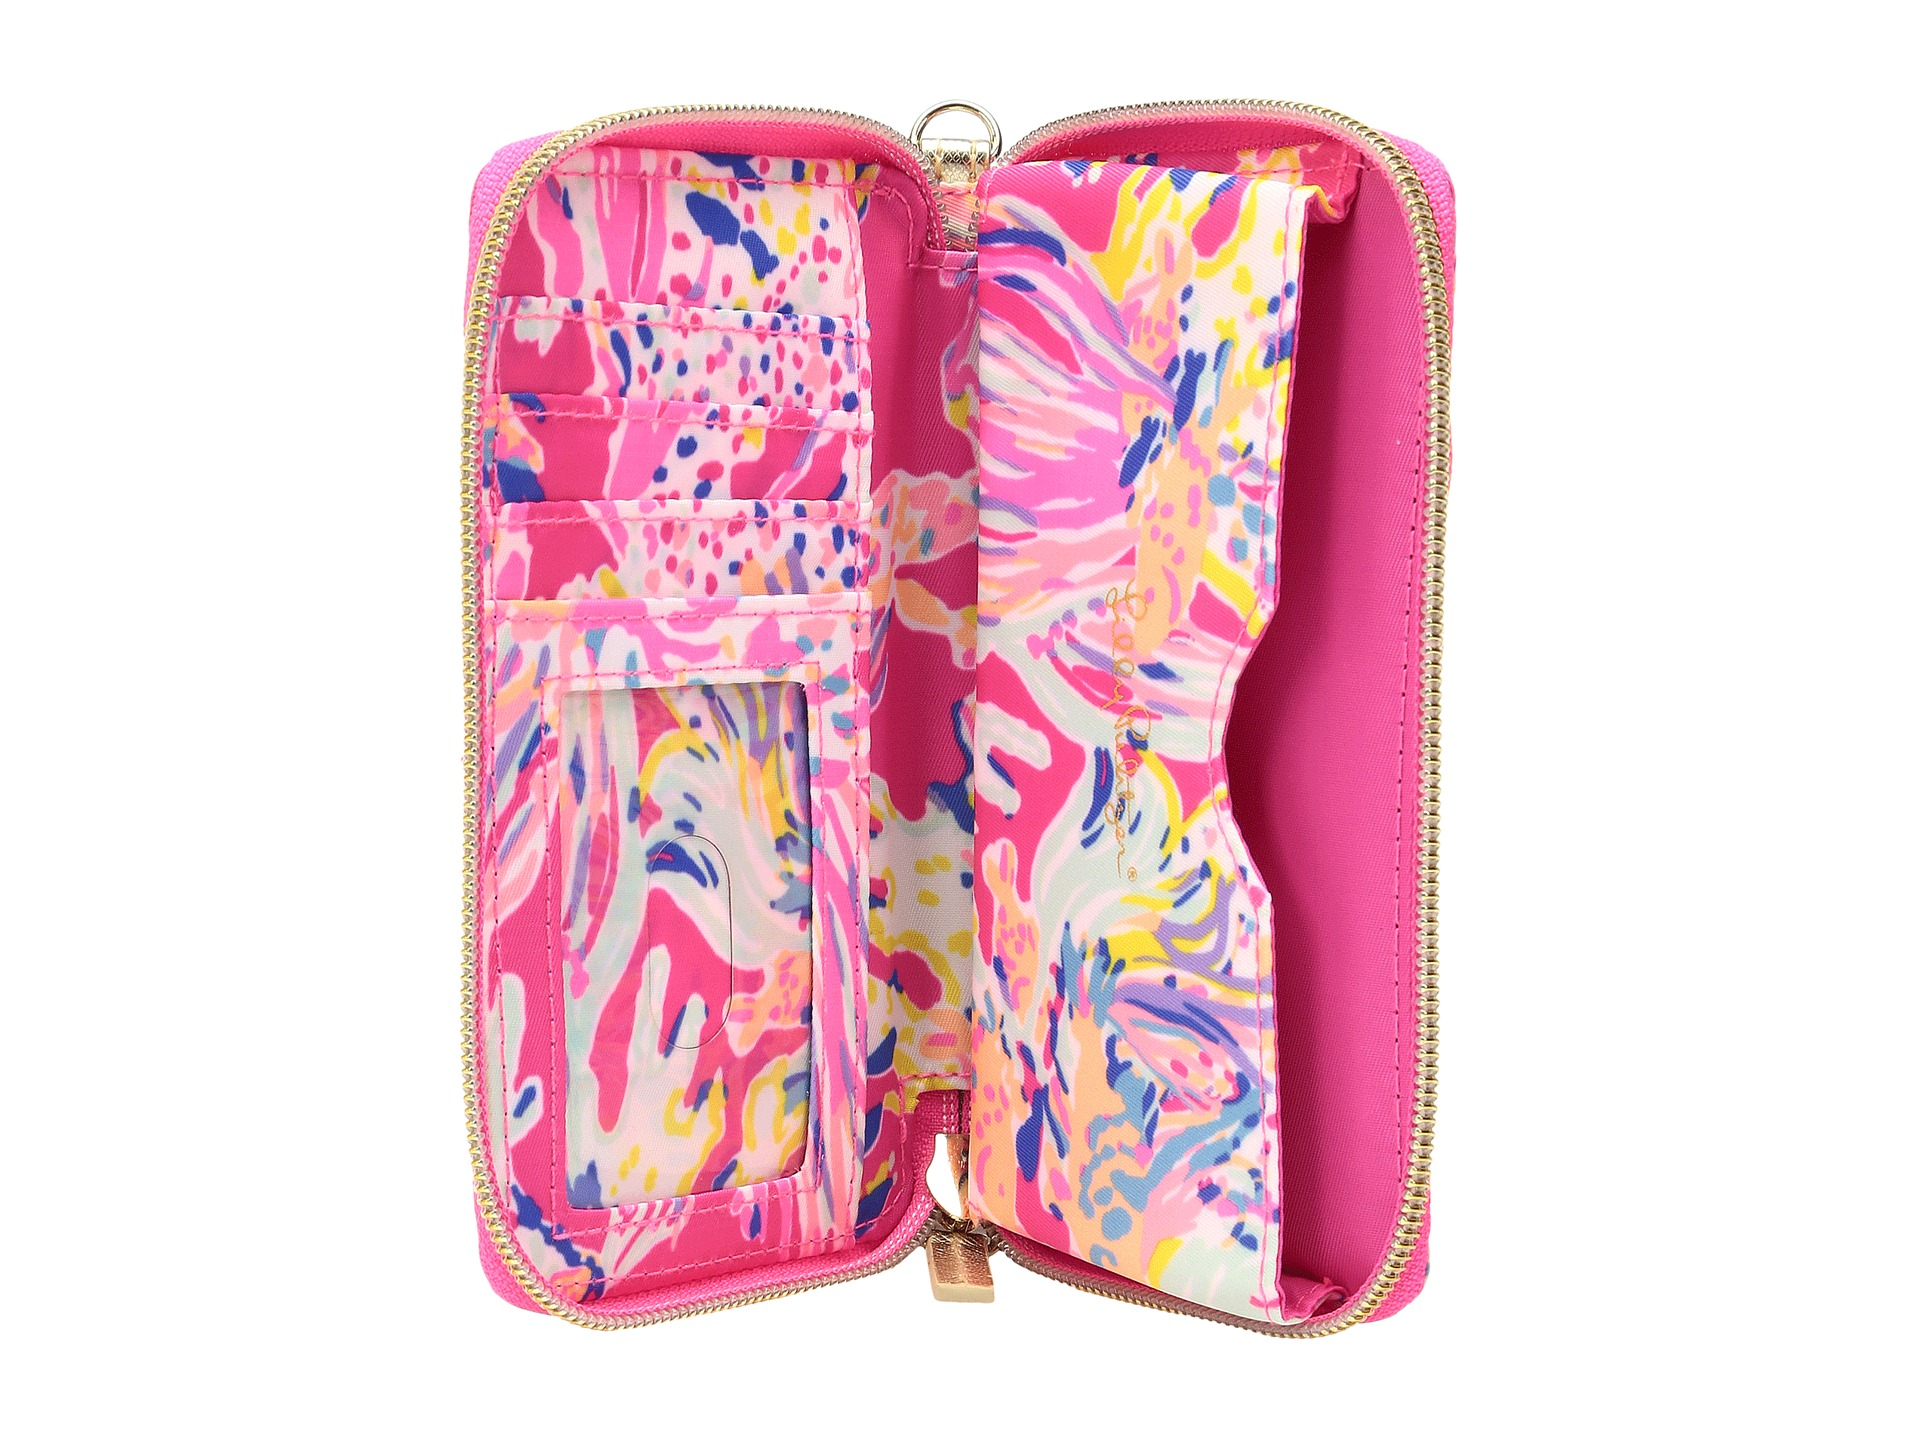 Lilly Pulitzer Iphone 5s Cases | Lilly Pulitzer Phone Case | Lily Pulitzer Phi Mu